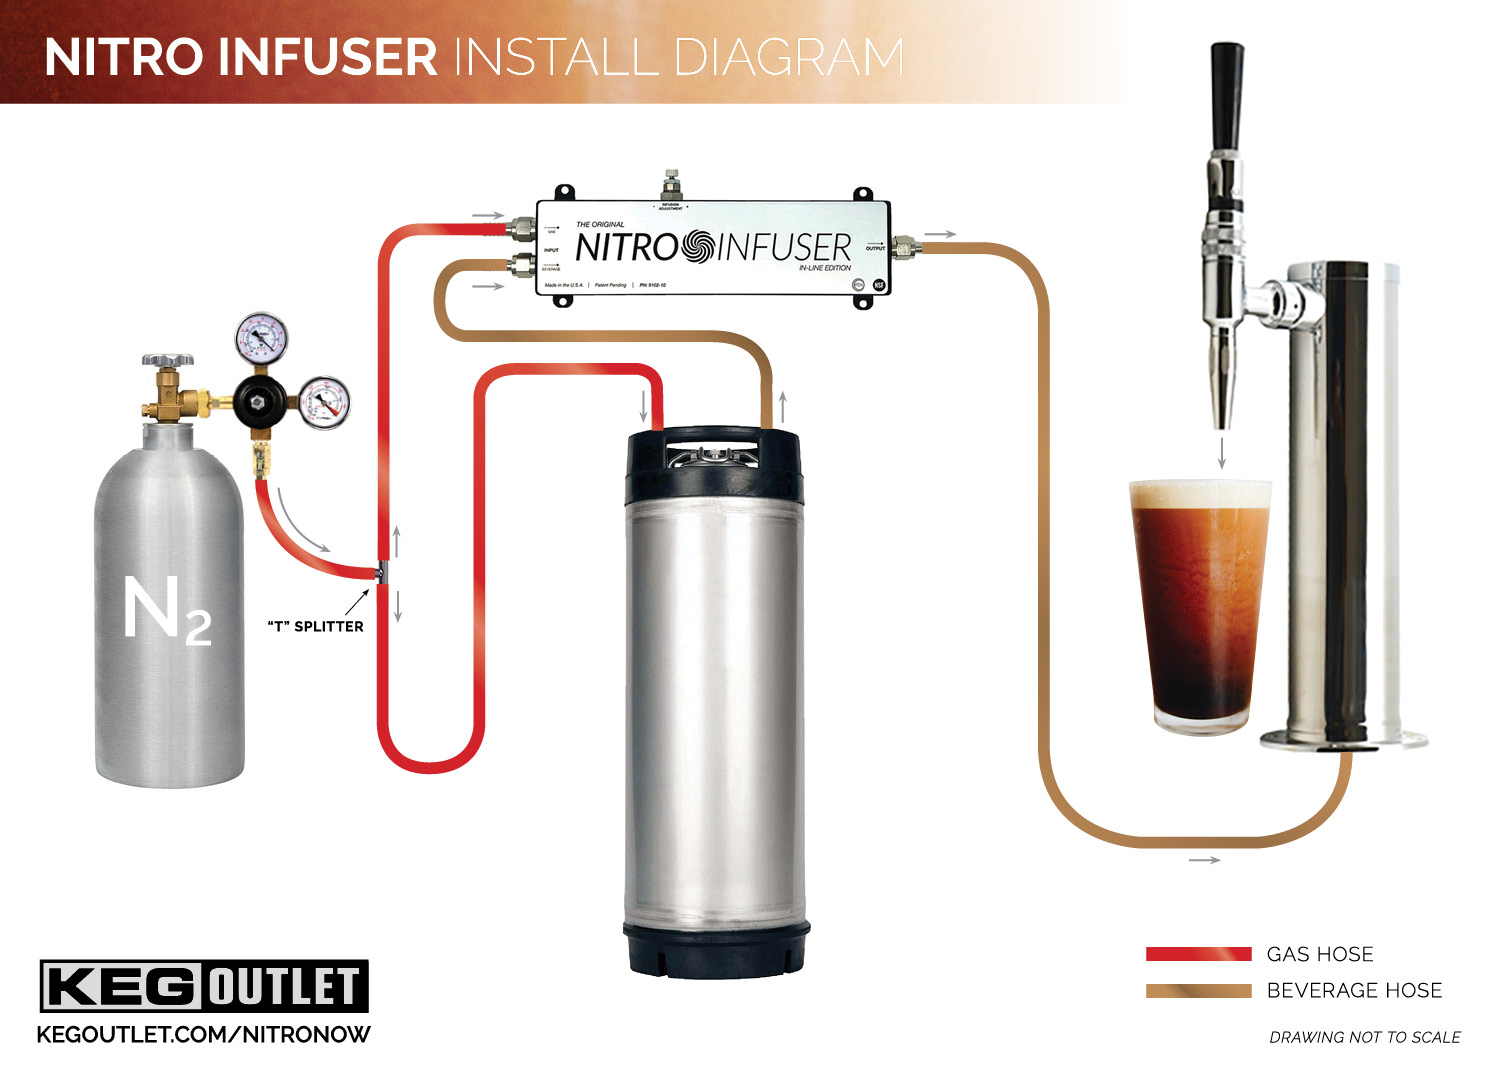 Nitro Infuser Installation Diagram